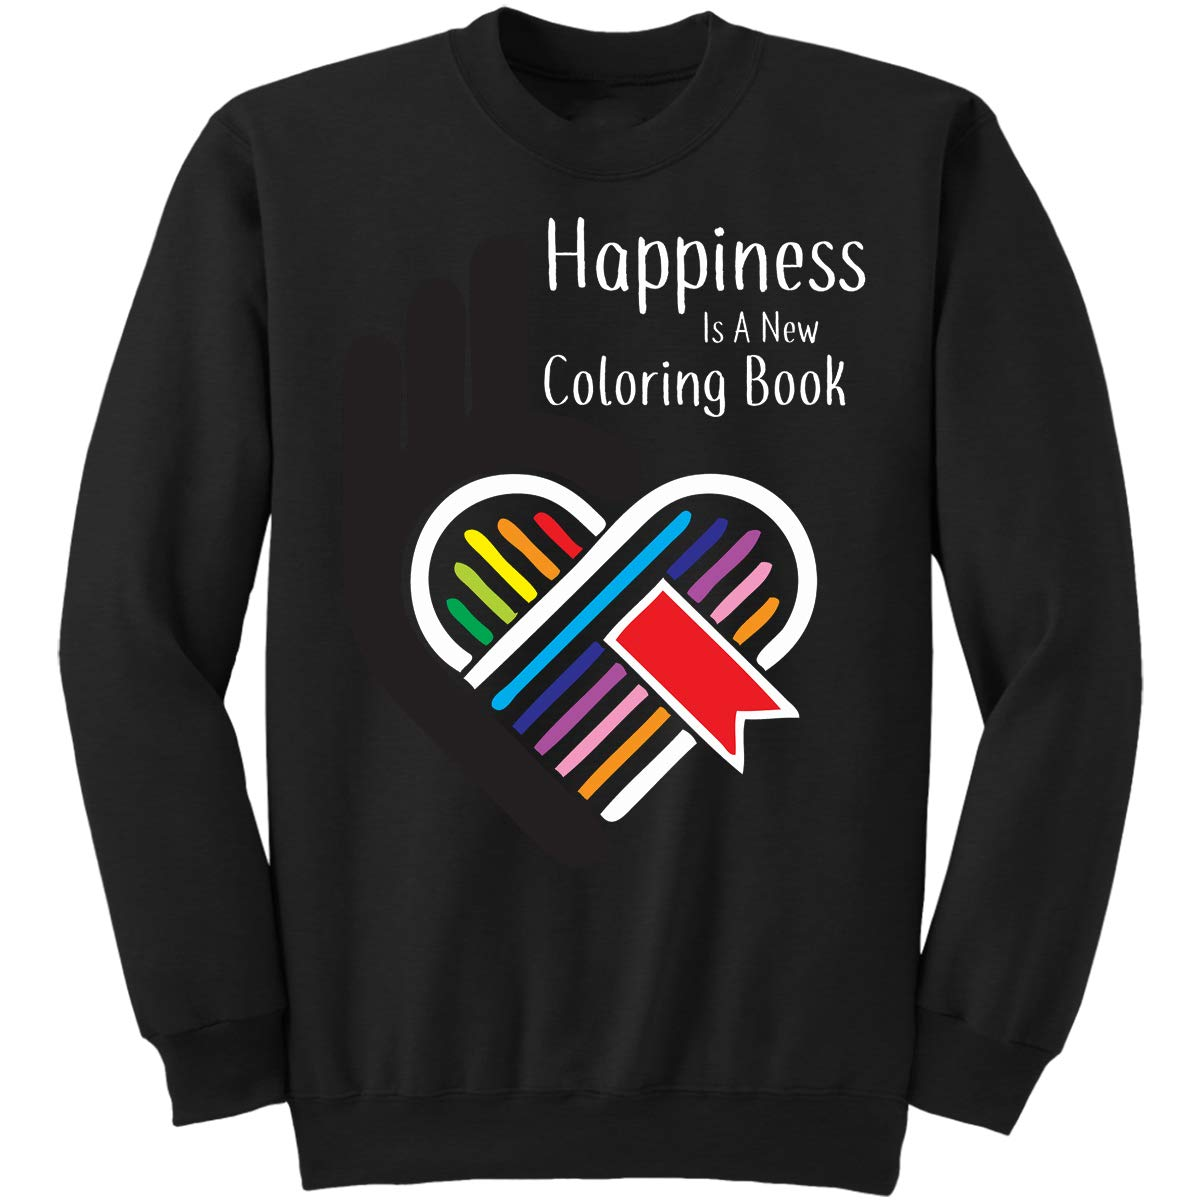 DoozyGifts99 Happiness is A Coloring Book Funny Sweatshirt